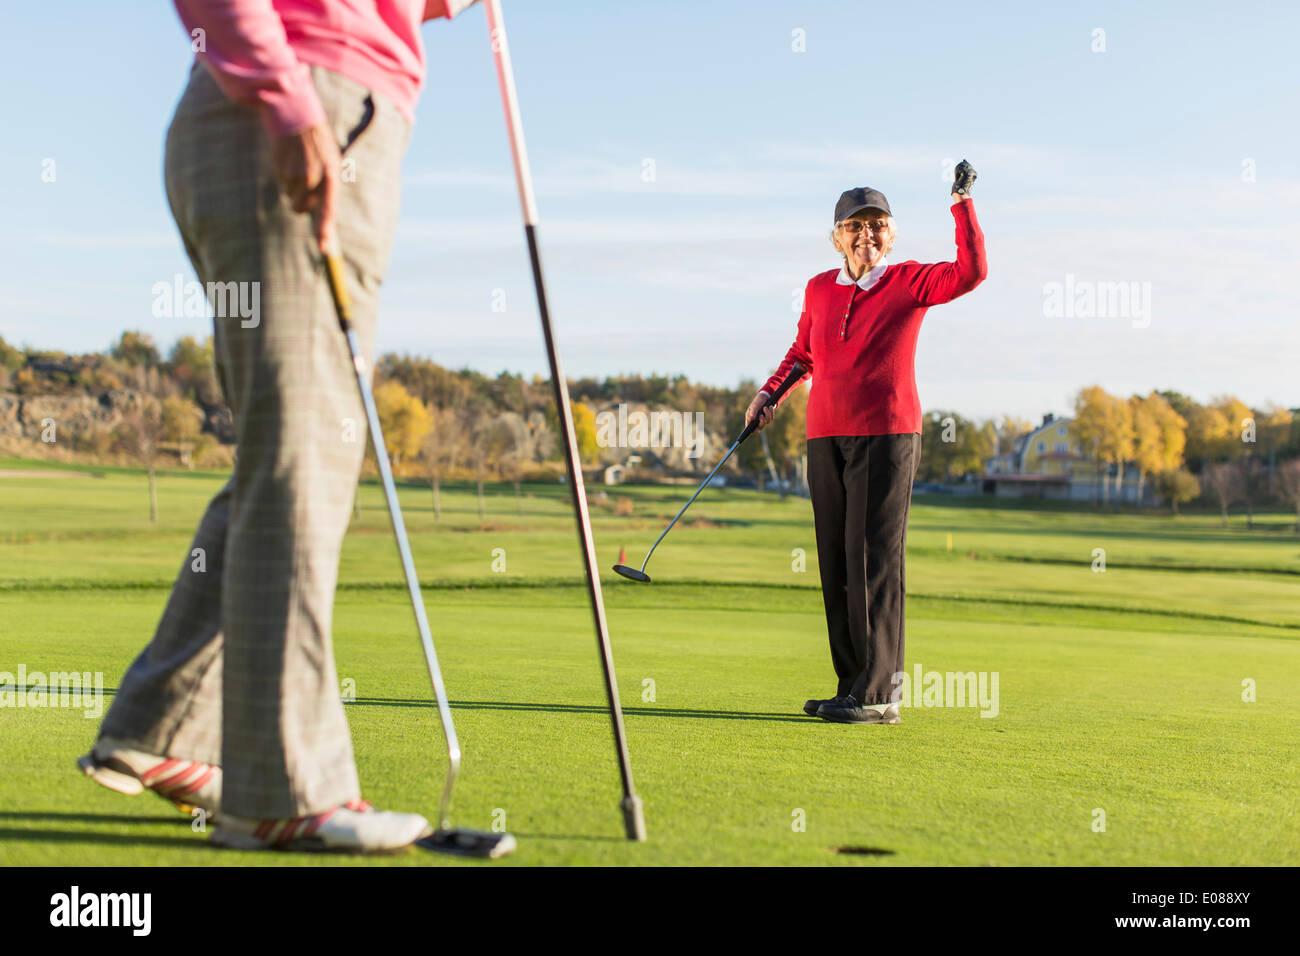 Full length of successful female golfer with friend on golf course - Stock Image